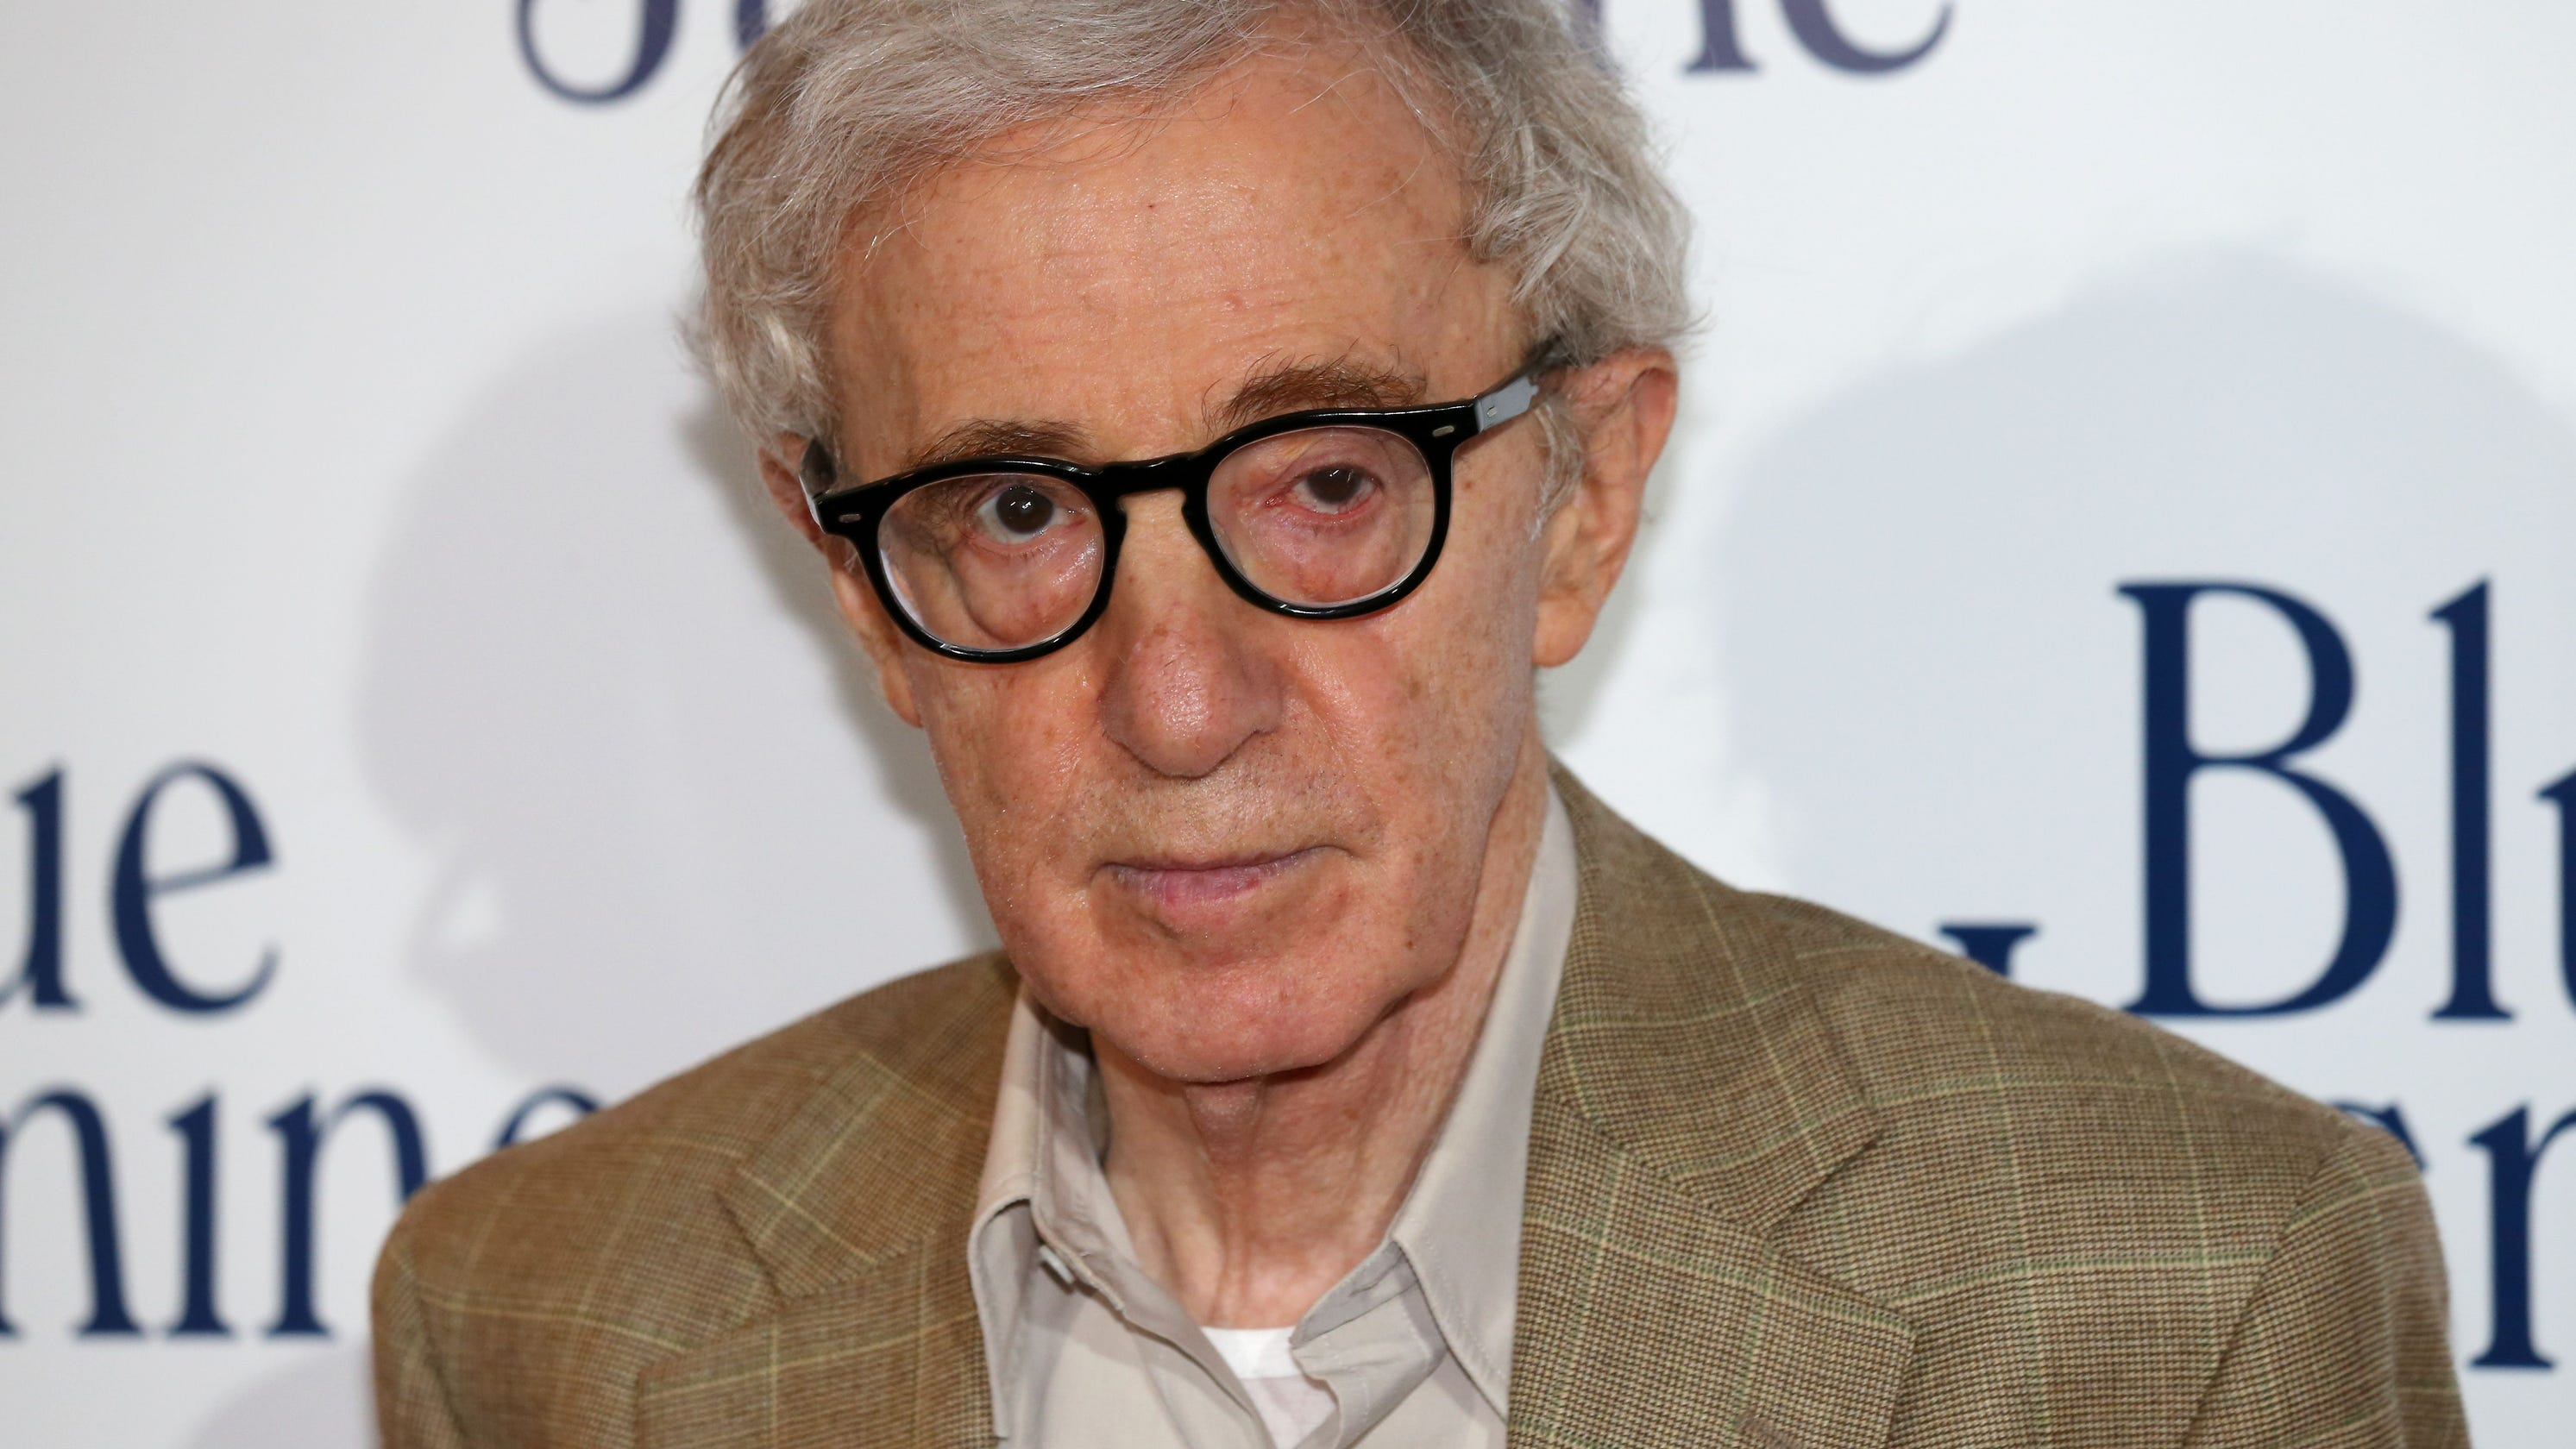 Woody Allen addresses Dylan Farrow sexual abuse allegations in rare interview: 'So preposterous'